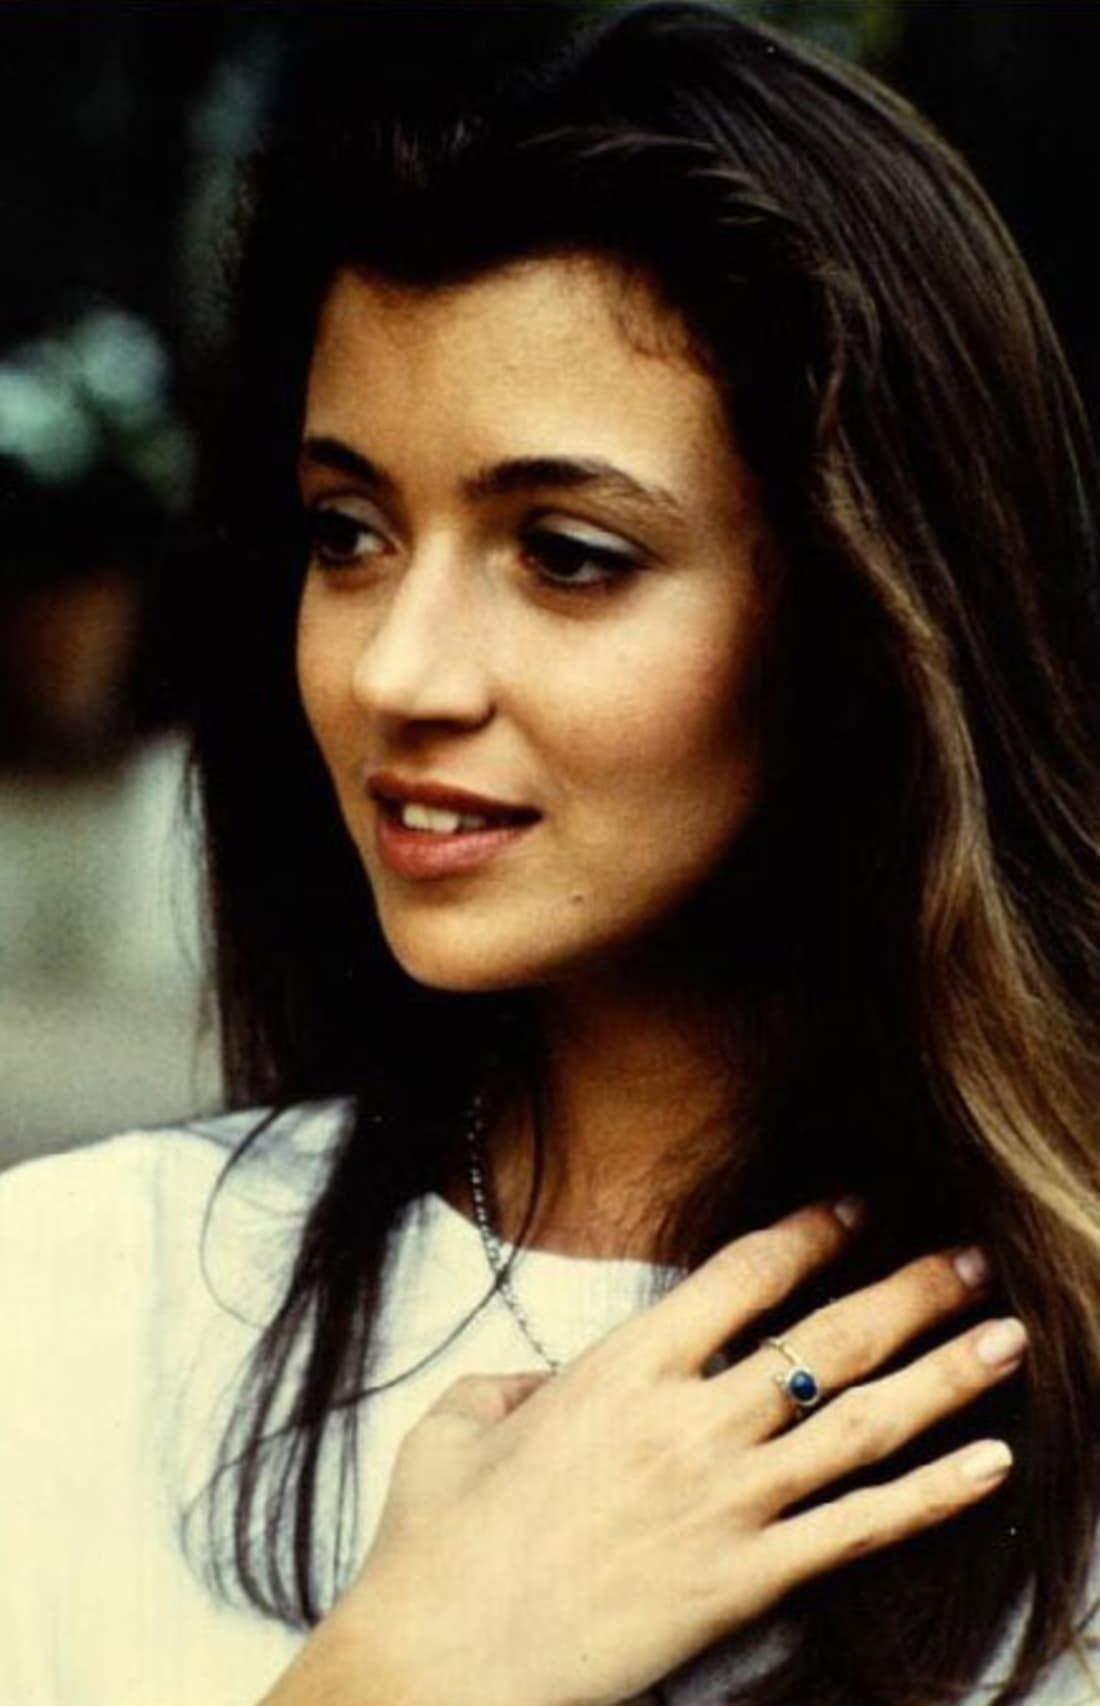 The 80 Hottest Women of the 80s (With images) | Mia sara